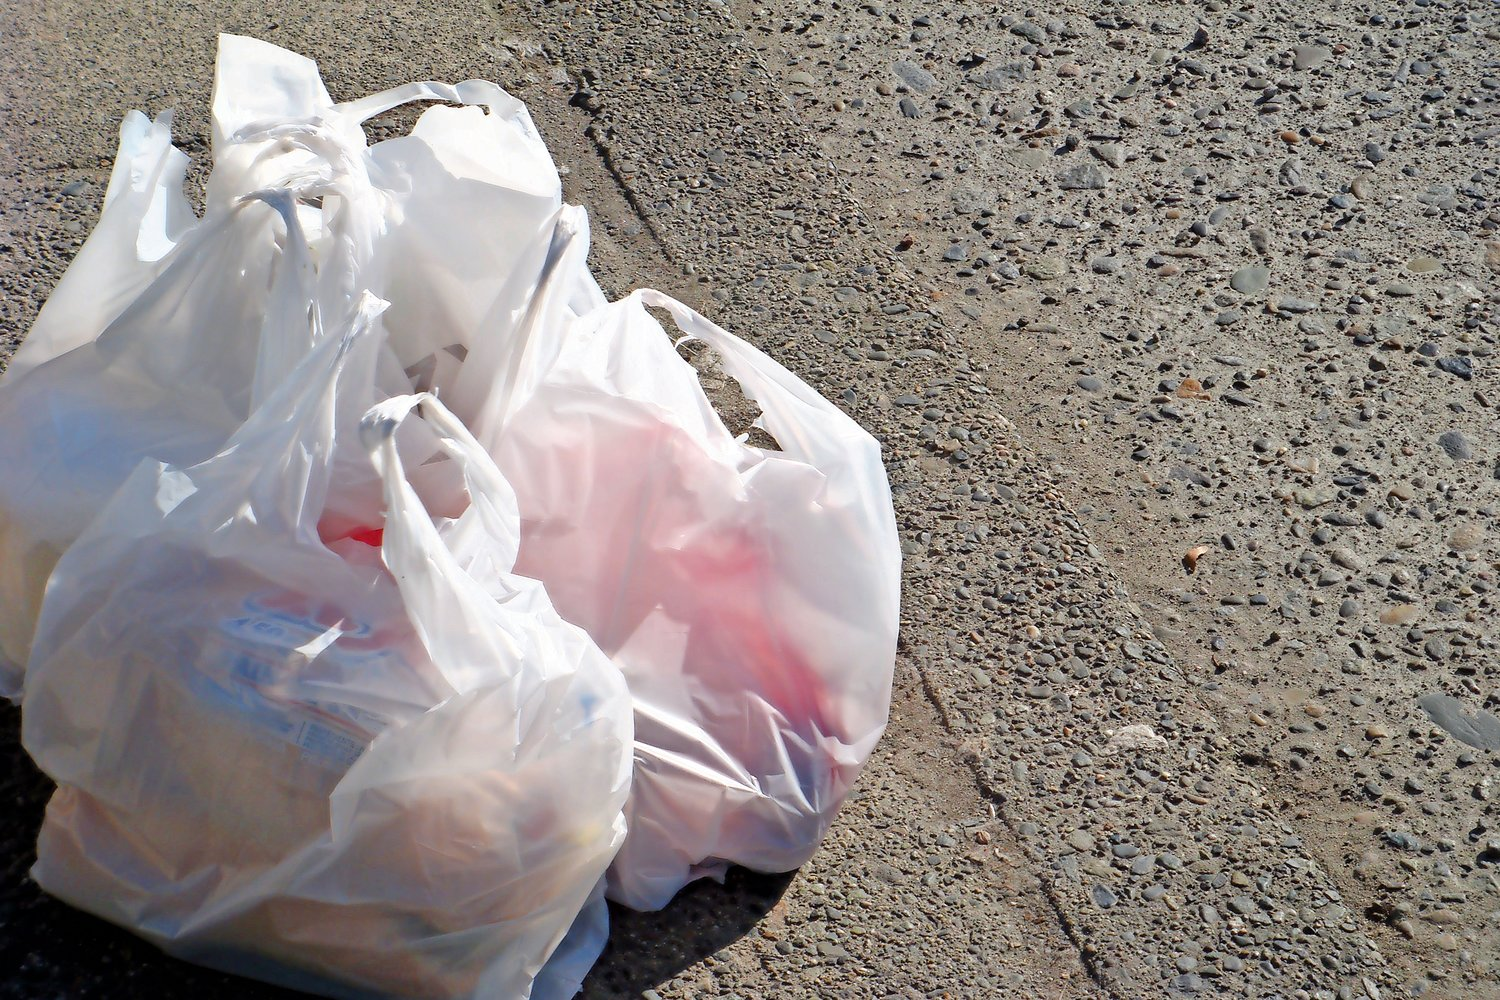 As part of the state budget passed over the weekend, plastic bags will be banned in New York retail stores.